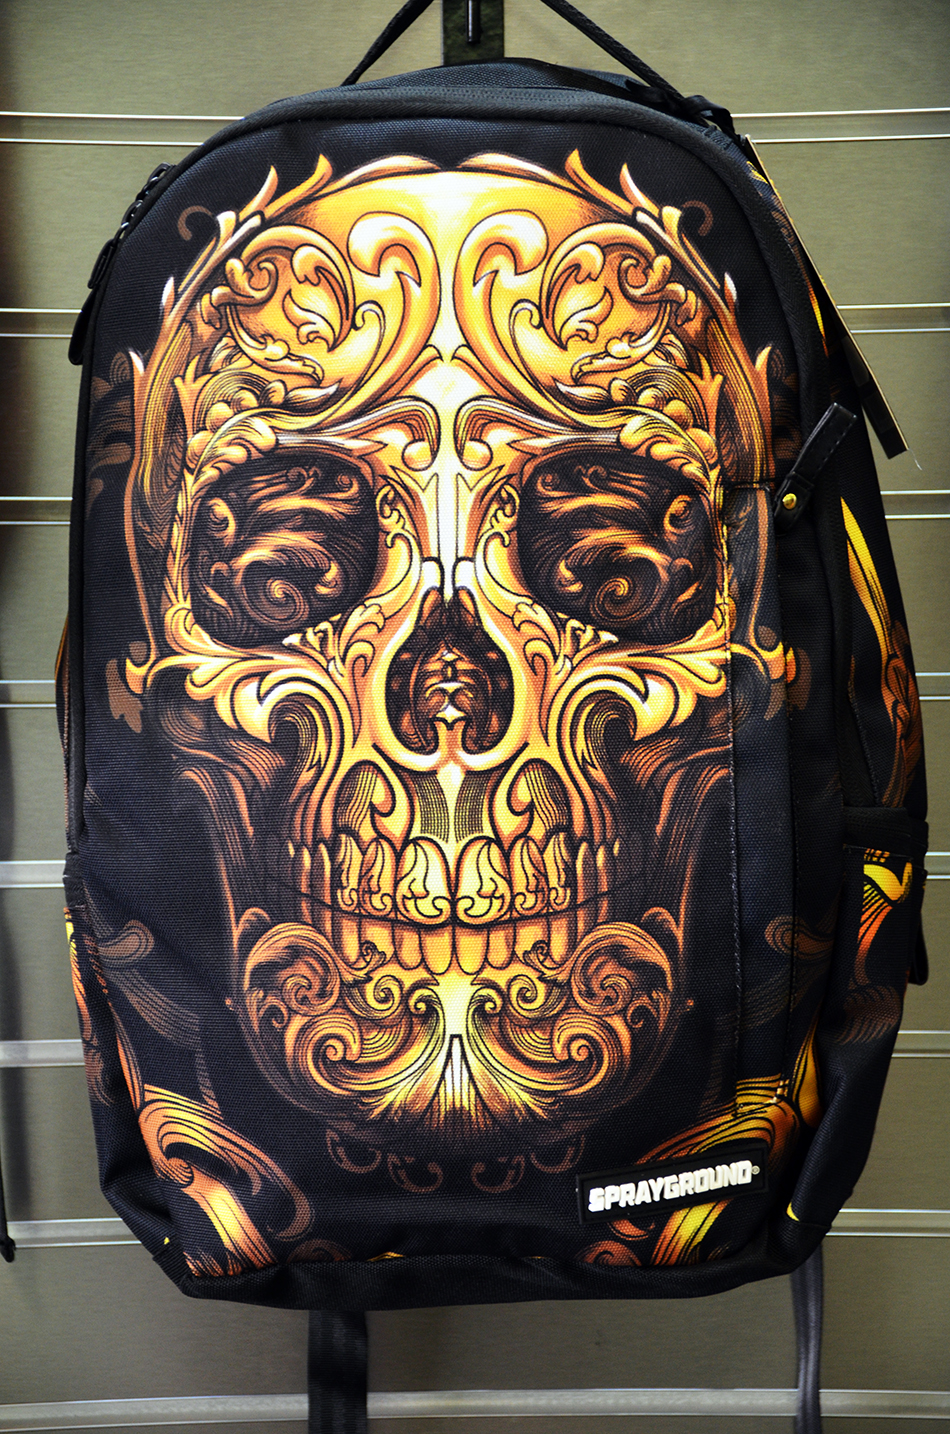 new sprayground backpacks sole boutique online sneaker